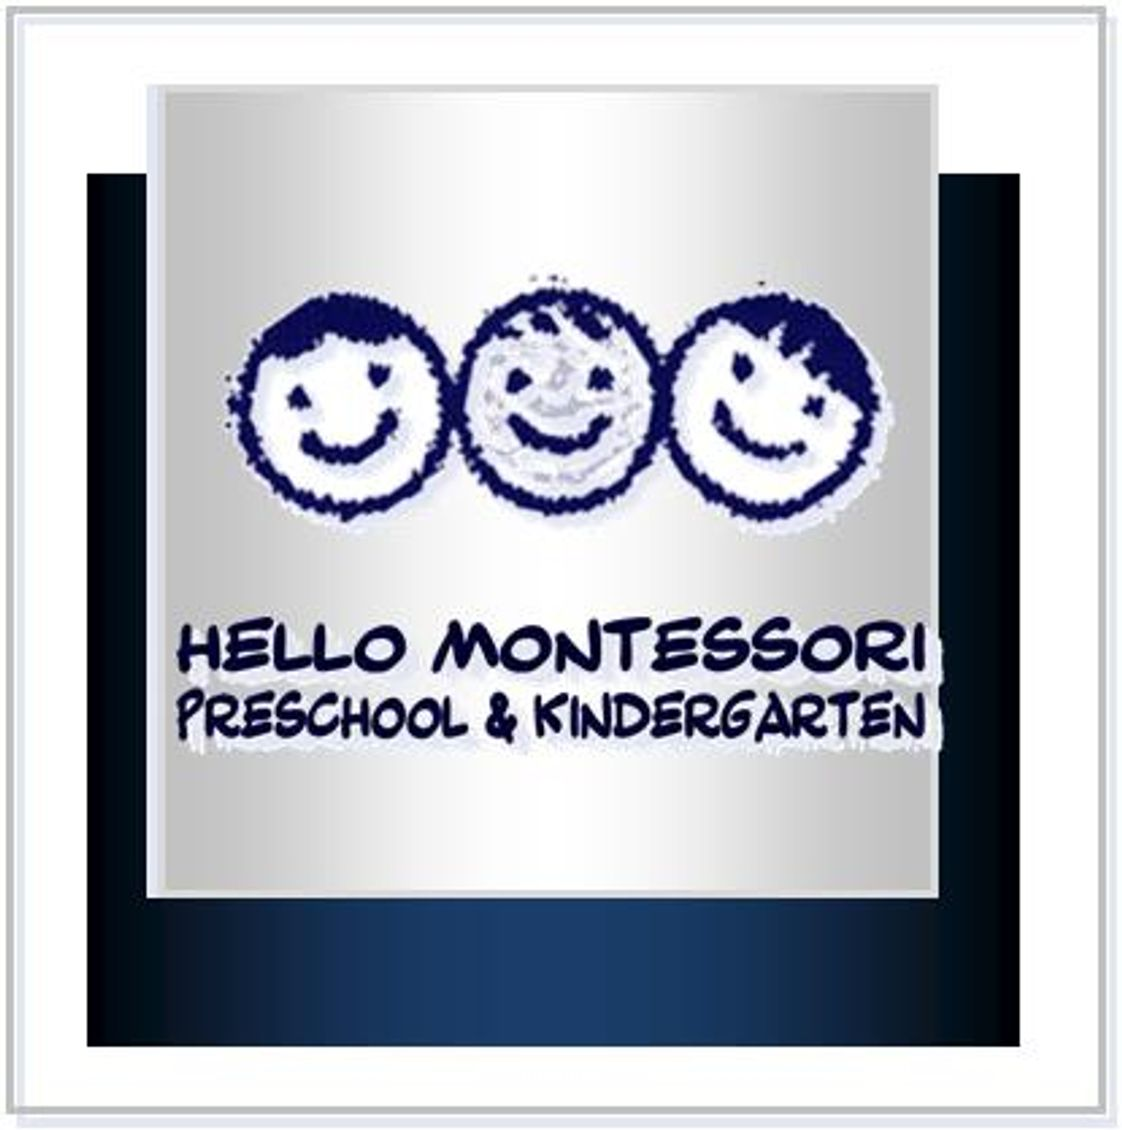 Hello Montessori Preschool & Kindergarten Photo - The Foundation for a Bright Future Starts at Hello.